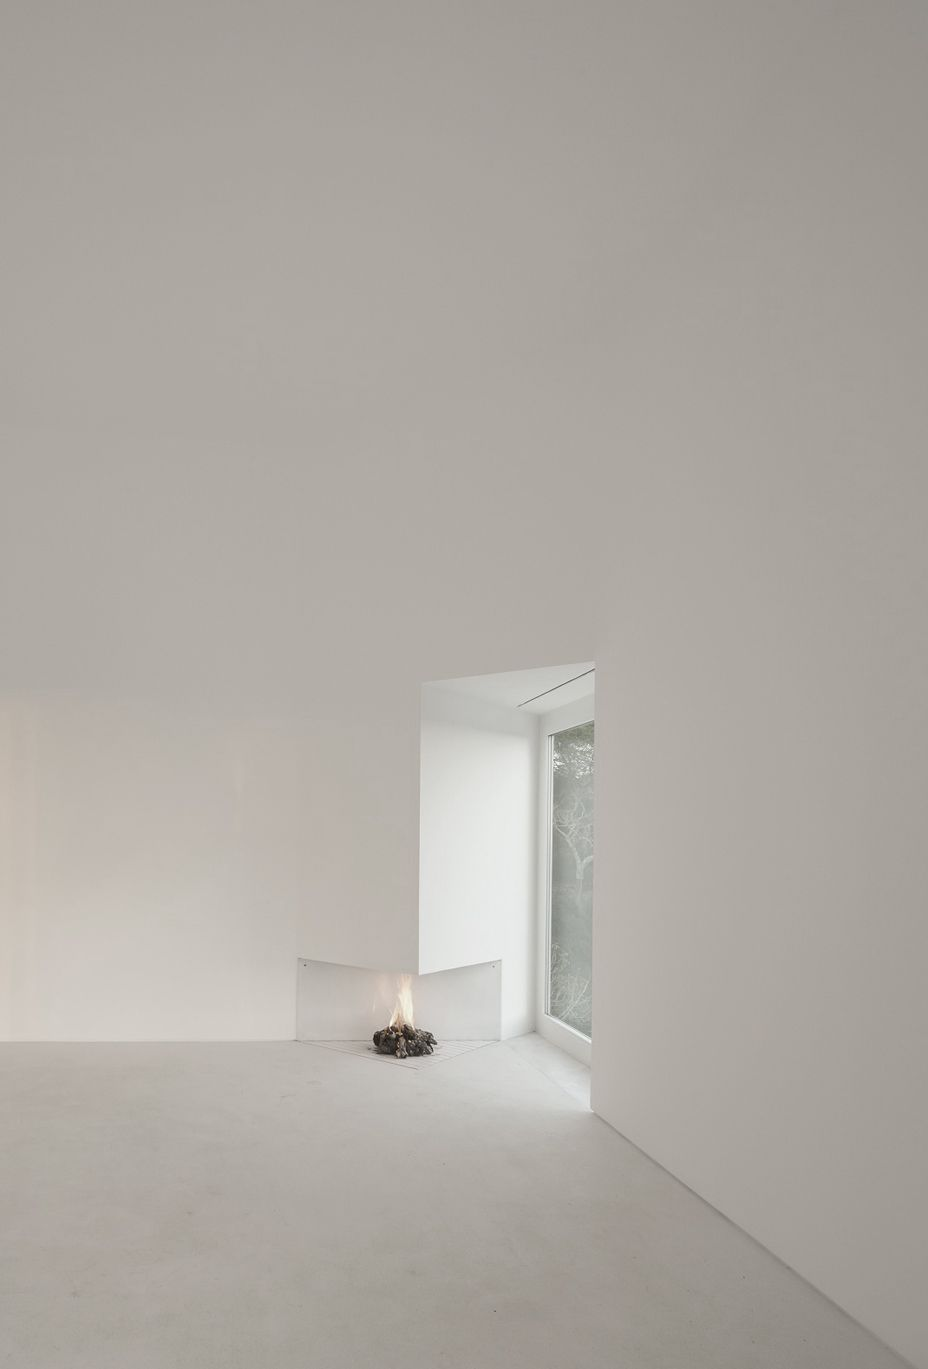 Triangular Fireplace in White Space